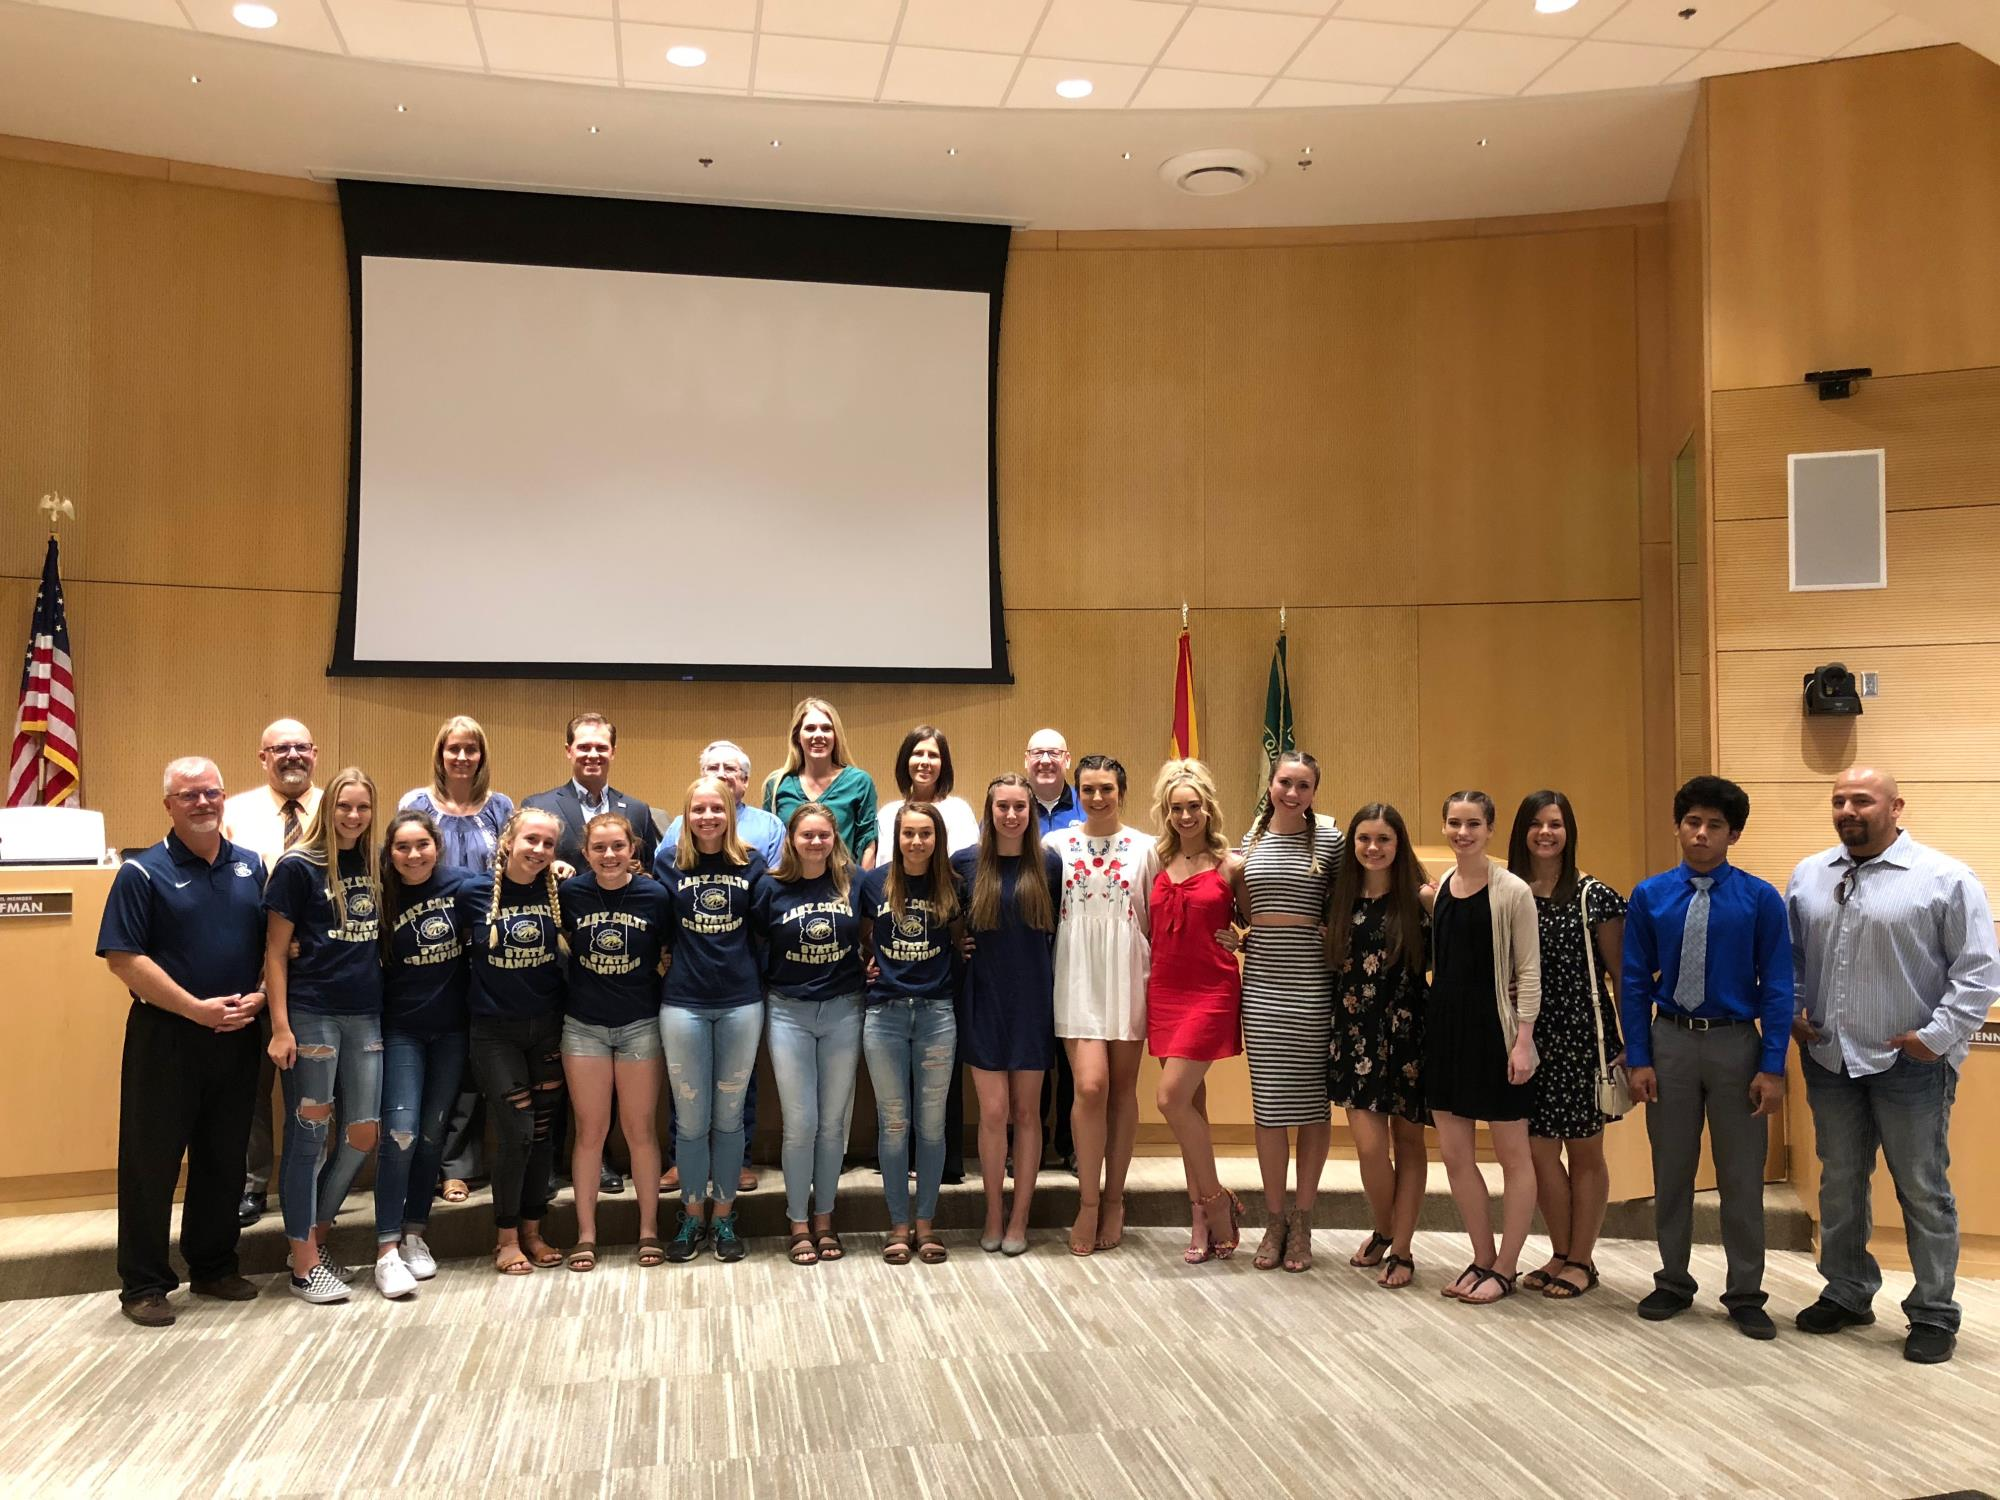 Mayor Barney and the Town Council with the Casteel High School State Champion Women's Soccer Team, Women's Spirit-line / POM Team, and Men's Wrestler during the May 2 Town Council Meeting